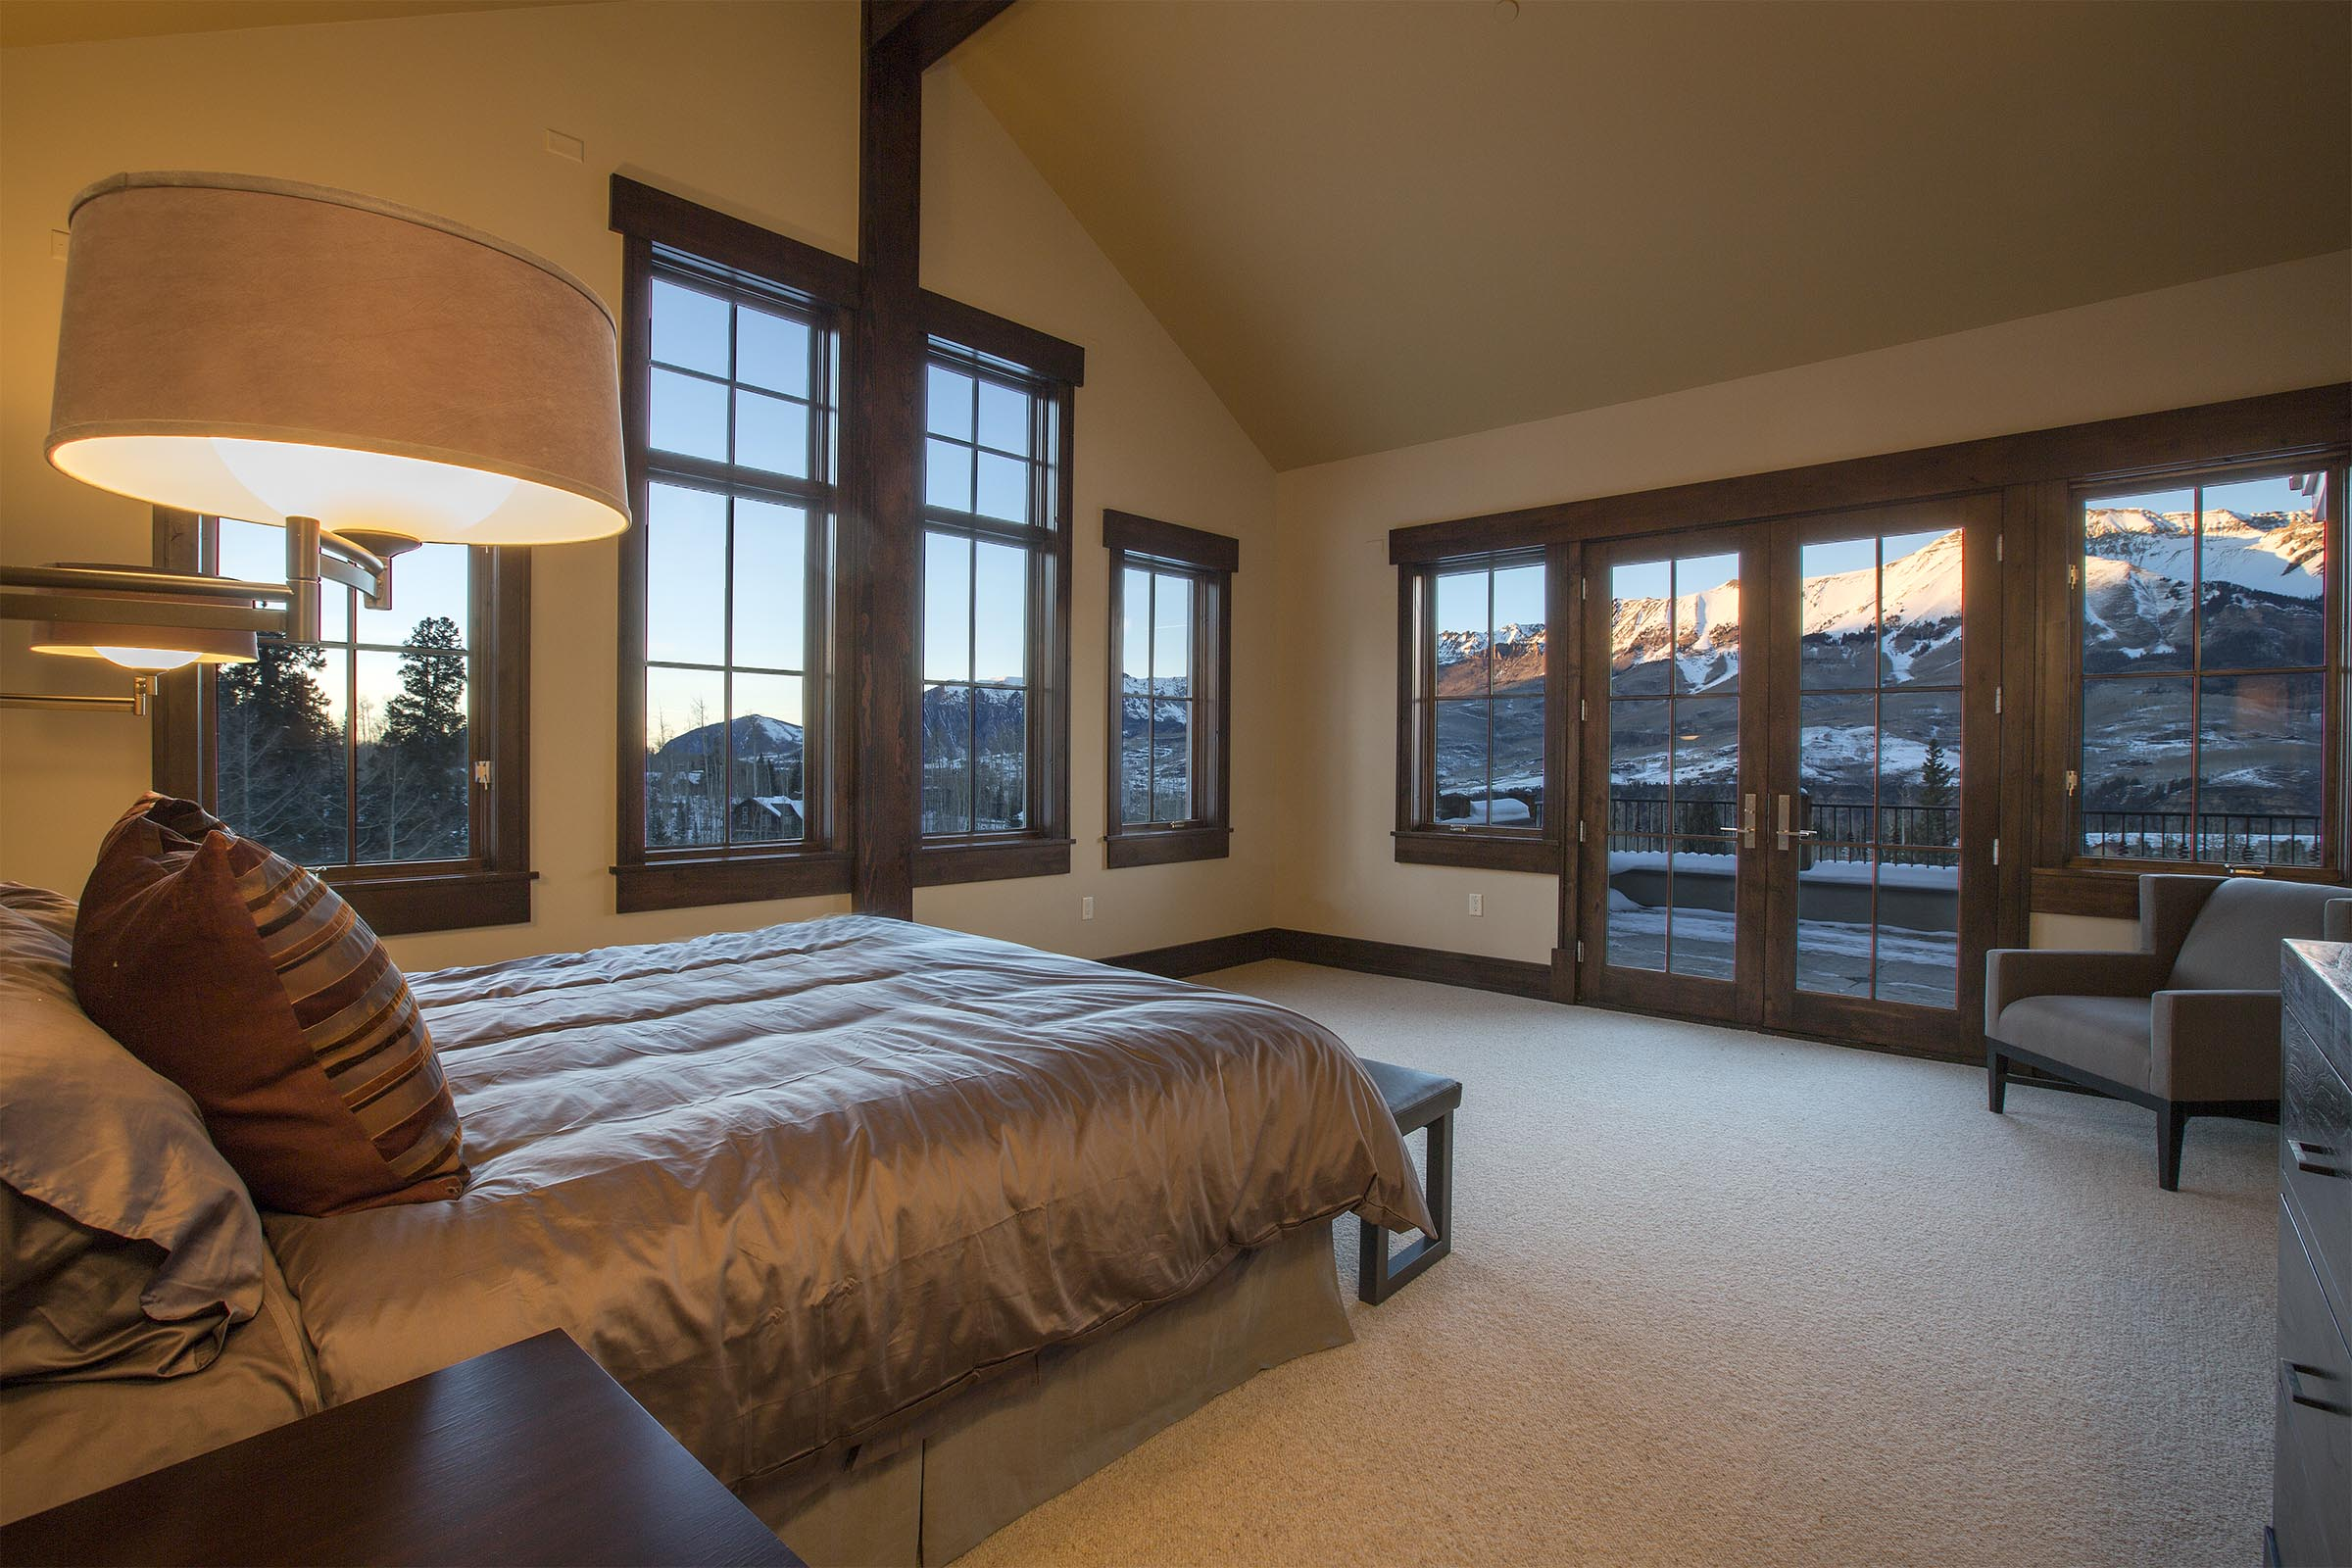 Кондоминиум для того Продажа на Elkstone 21, Unit 401 500 Mountain Village Blvd, Unit 401 Mountain Village, Telluride, Колорадо, 81435 Соединенные Штаты